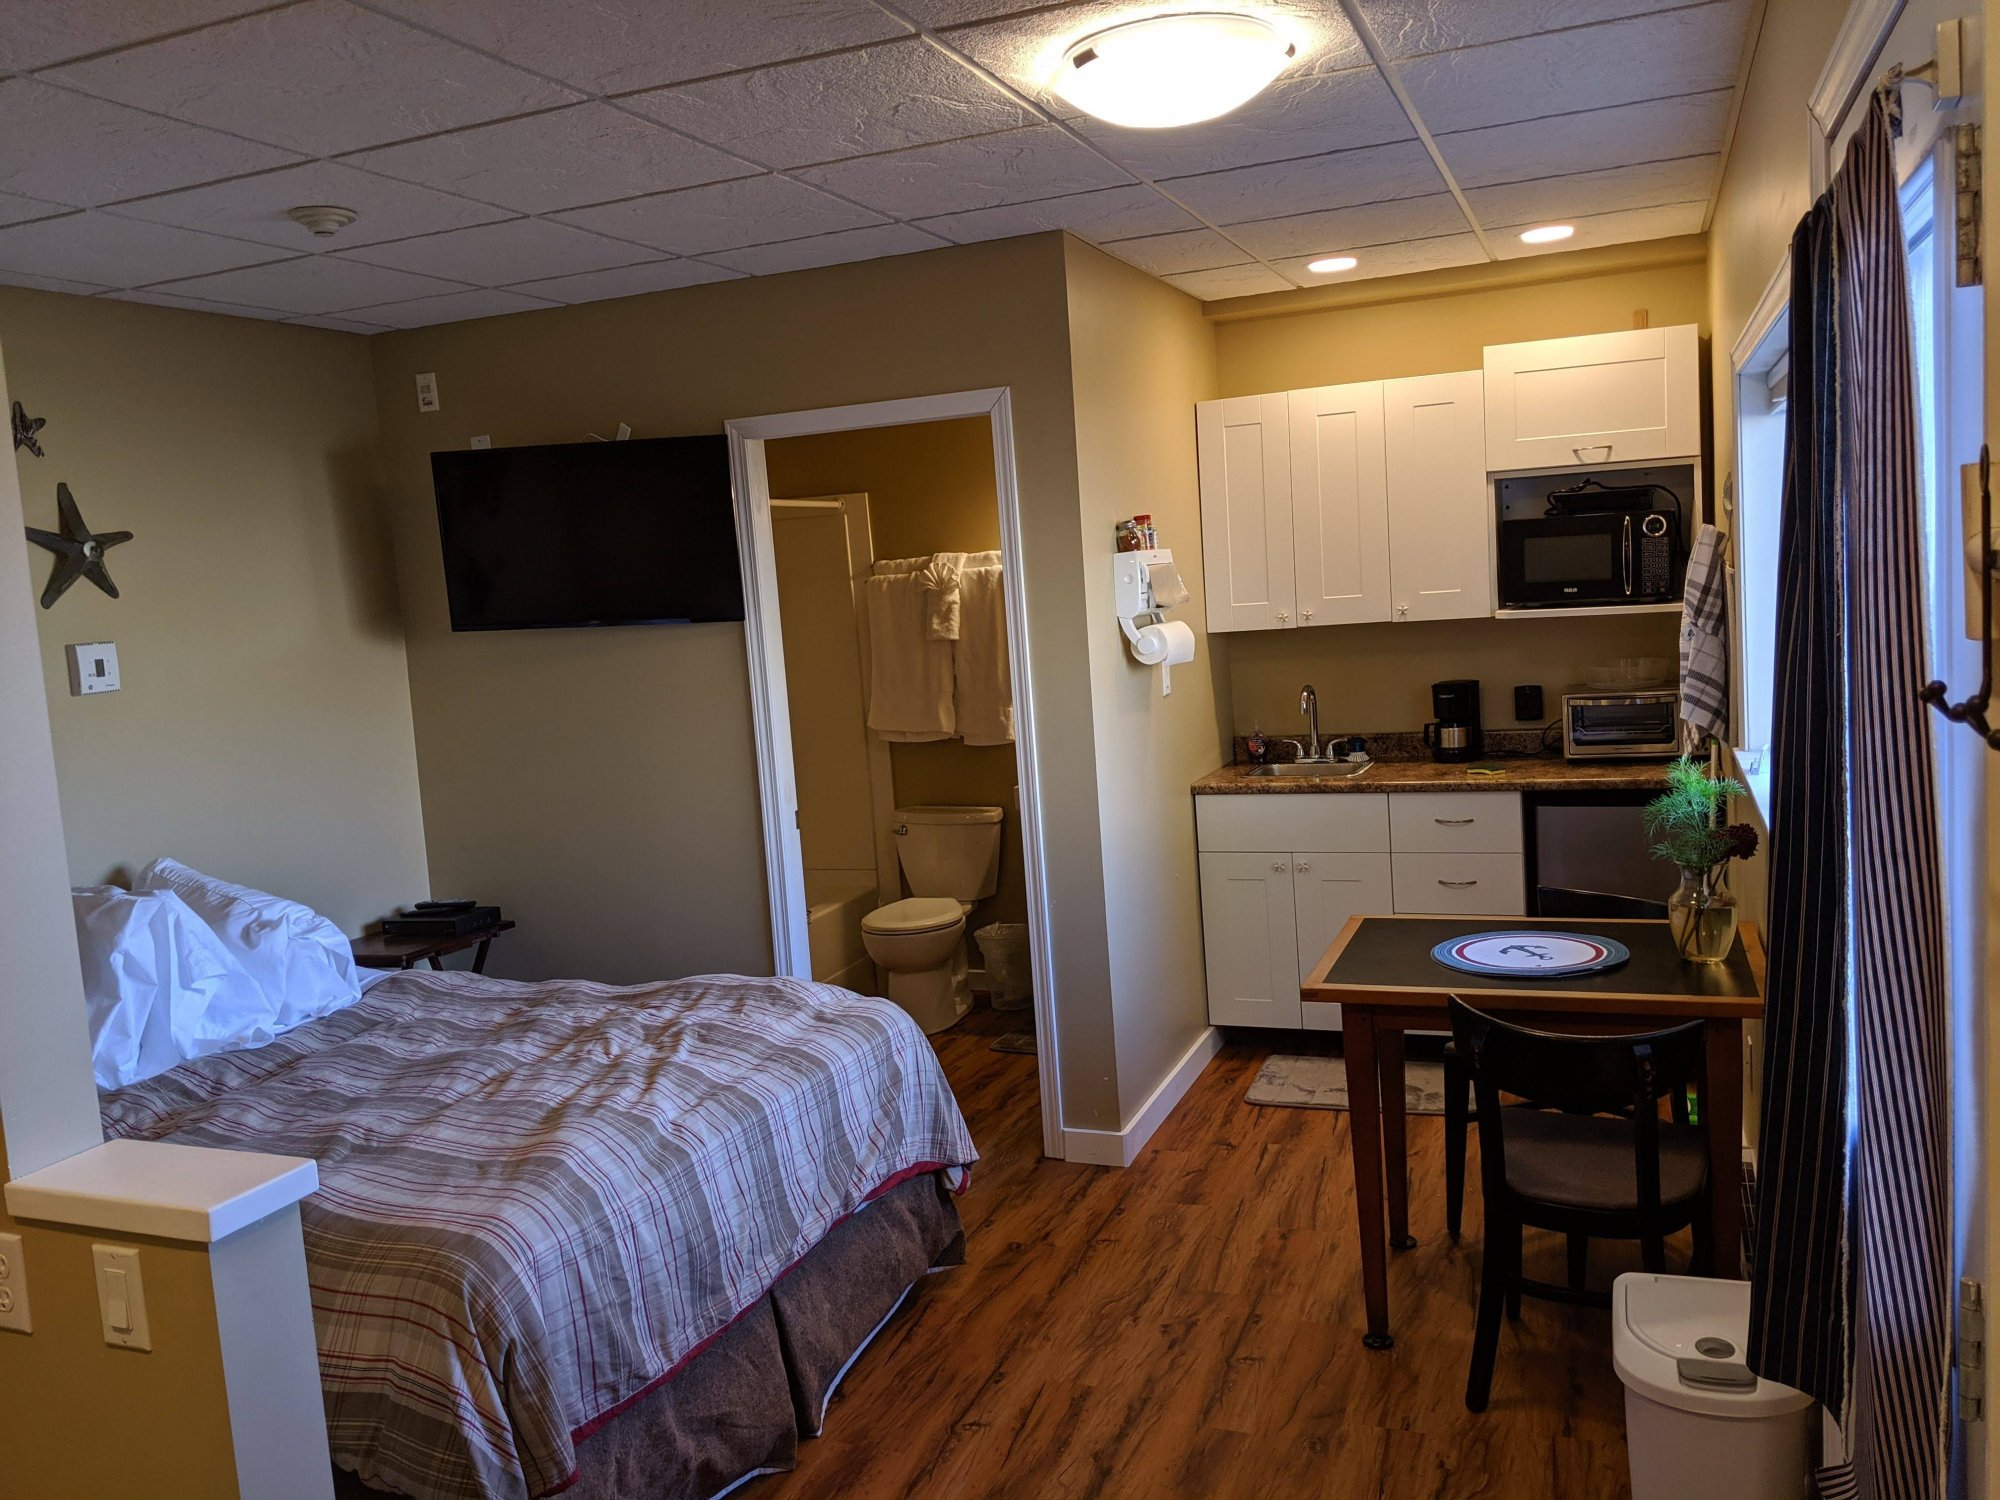 Room 8, pet friendly, kitchenette, queen bed.